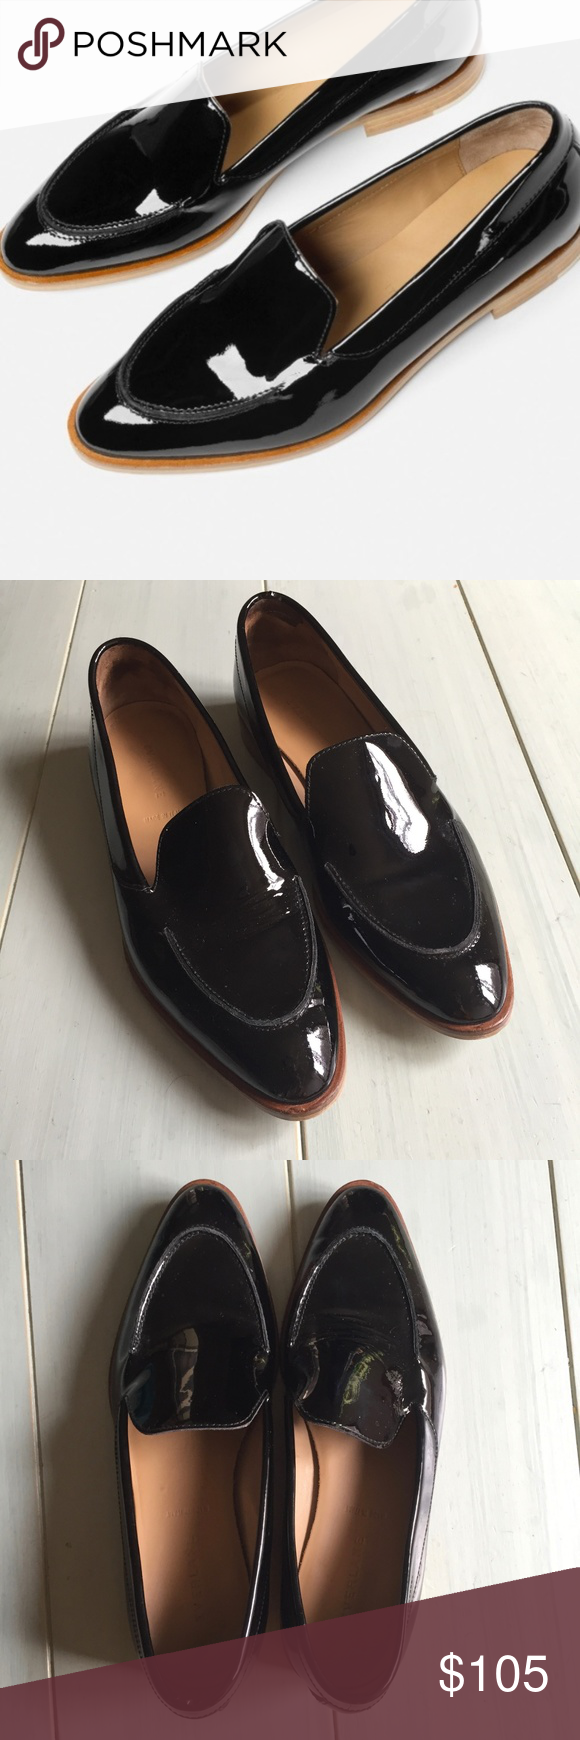 053cb8cd8f4 Everlane Modern Loafer in Black Patent Leather Same elegant Modern Loafer  now with a high-gloss finish. The leather is chrome-tanned then treated  with a ...